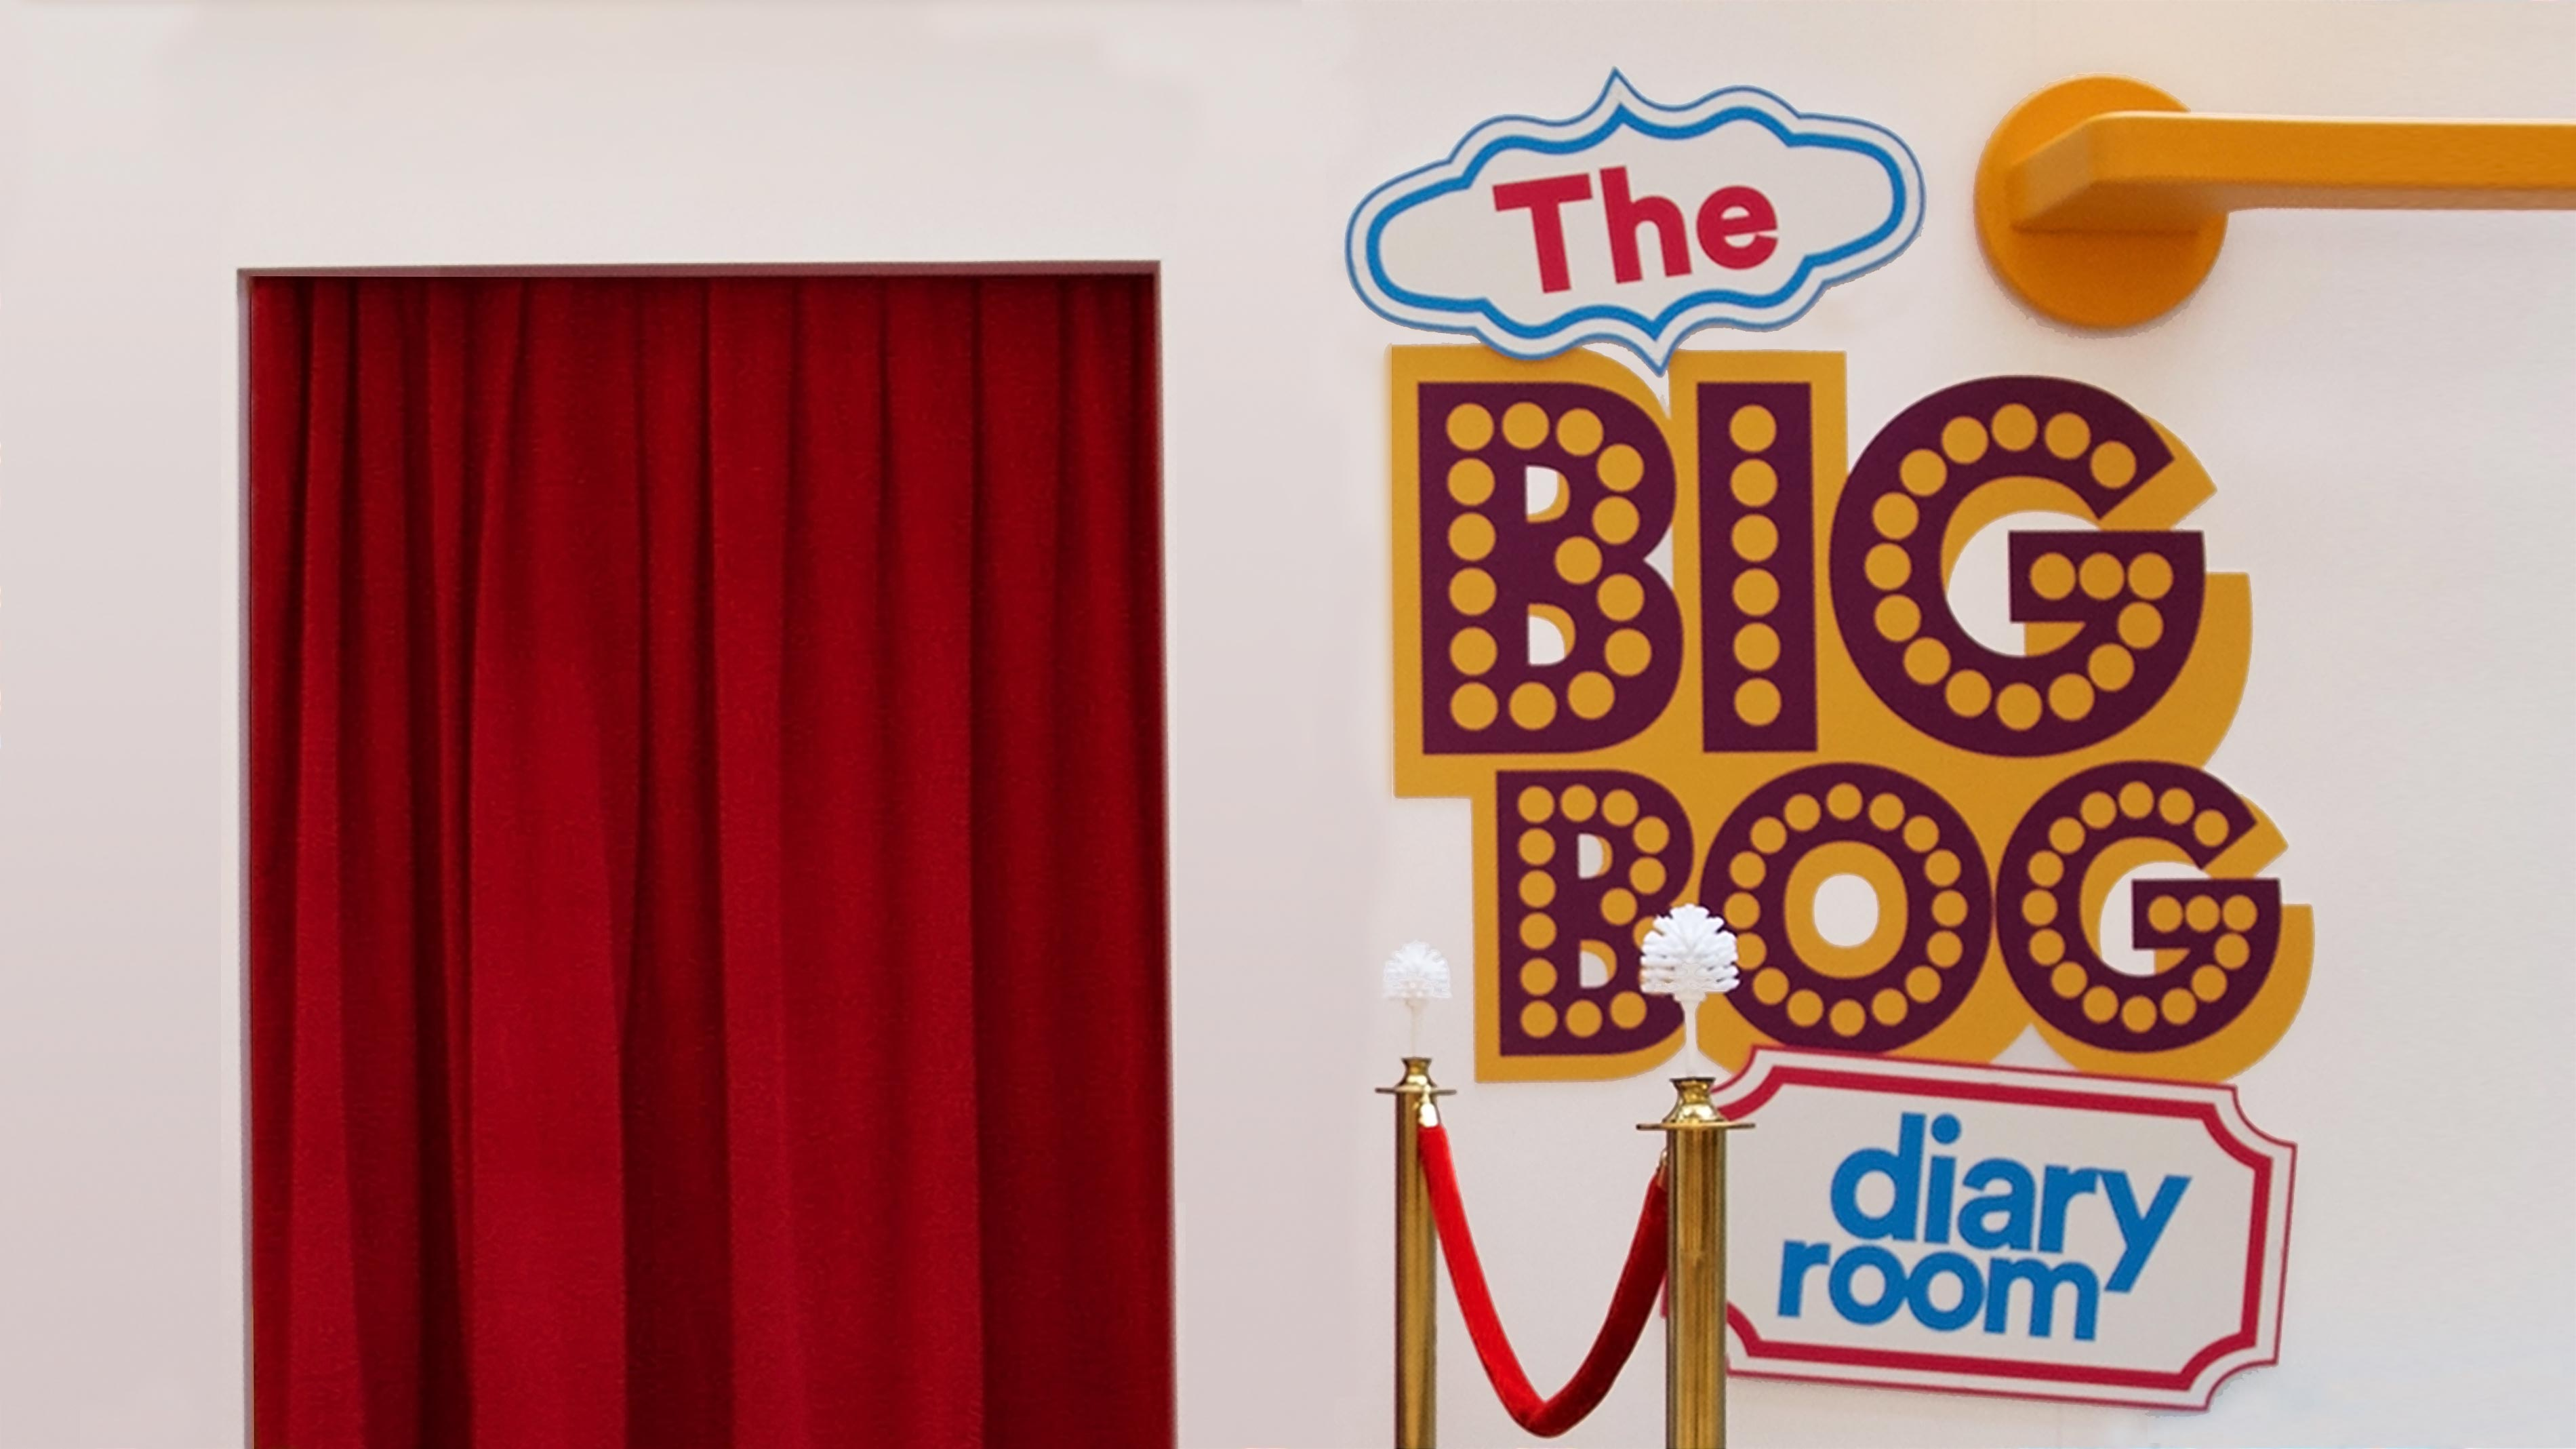 The Big Bog – effective ideas by Brand experience agency